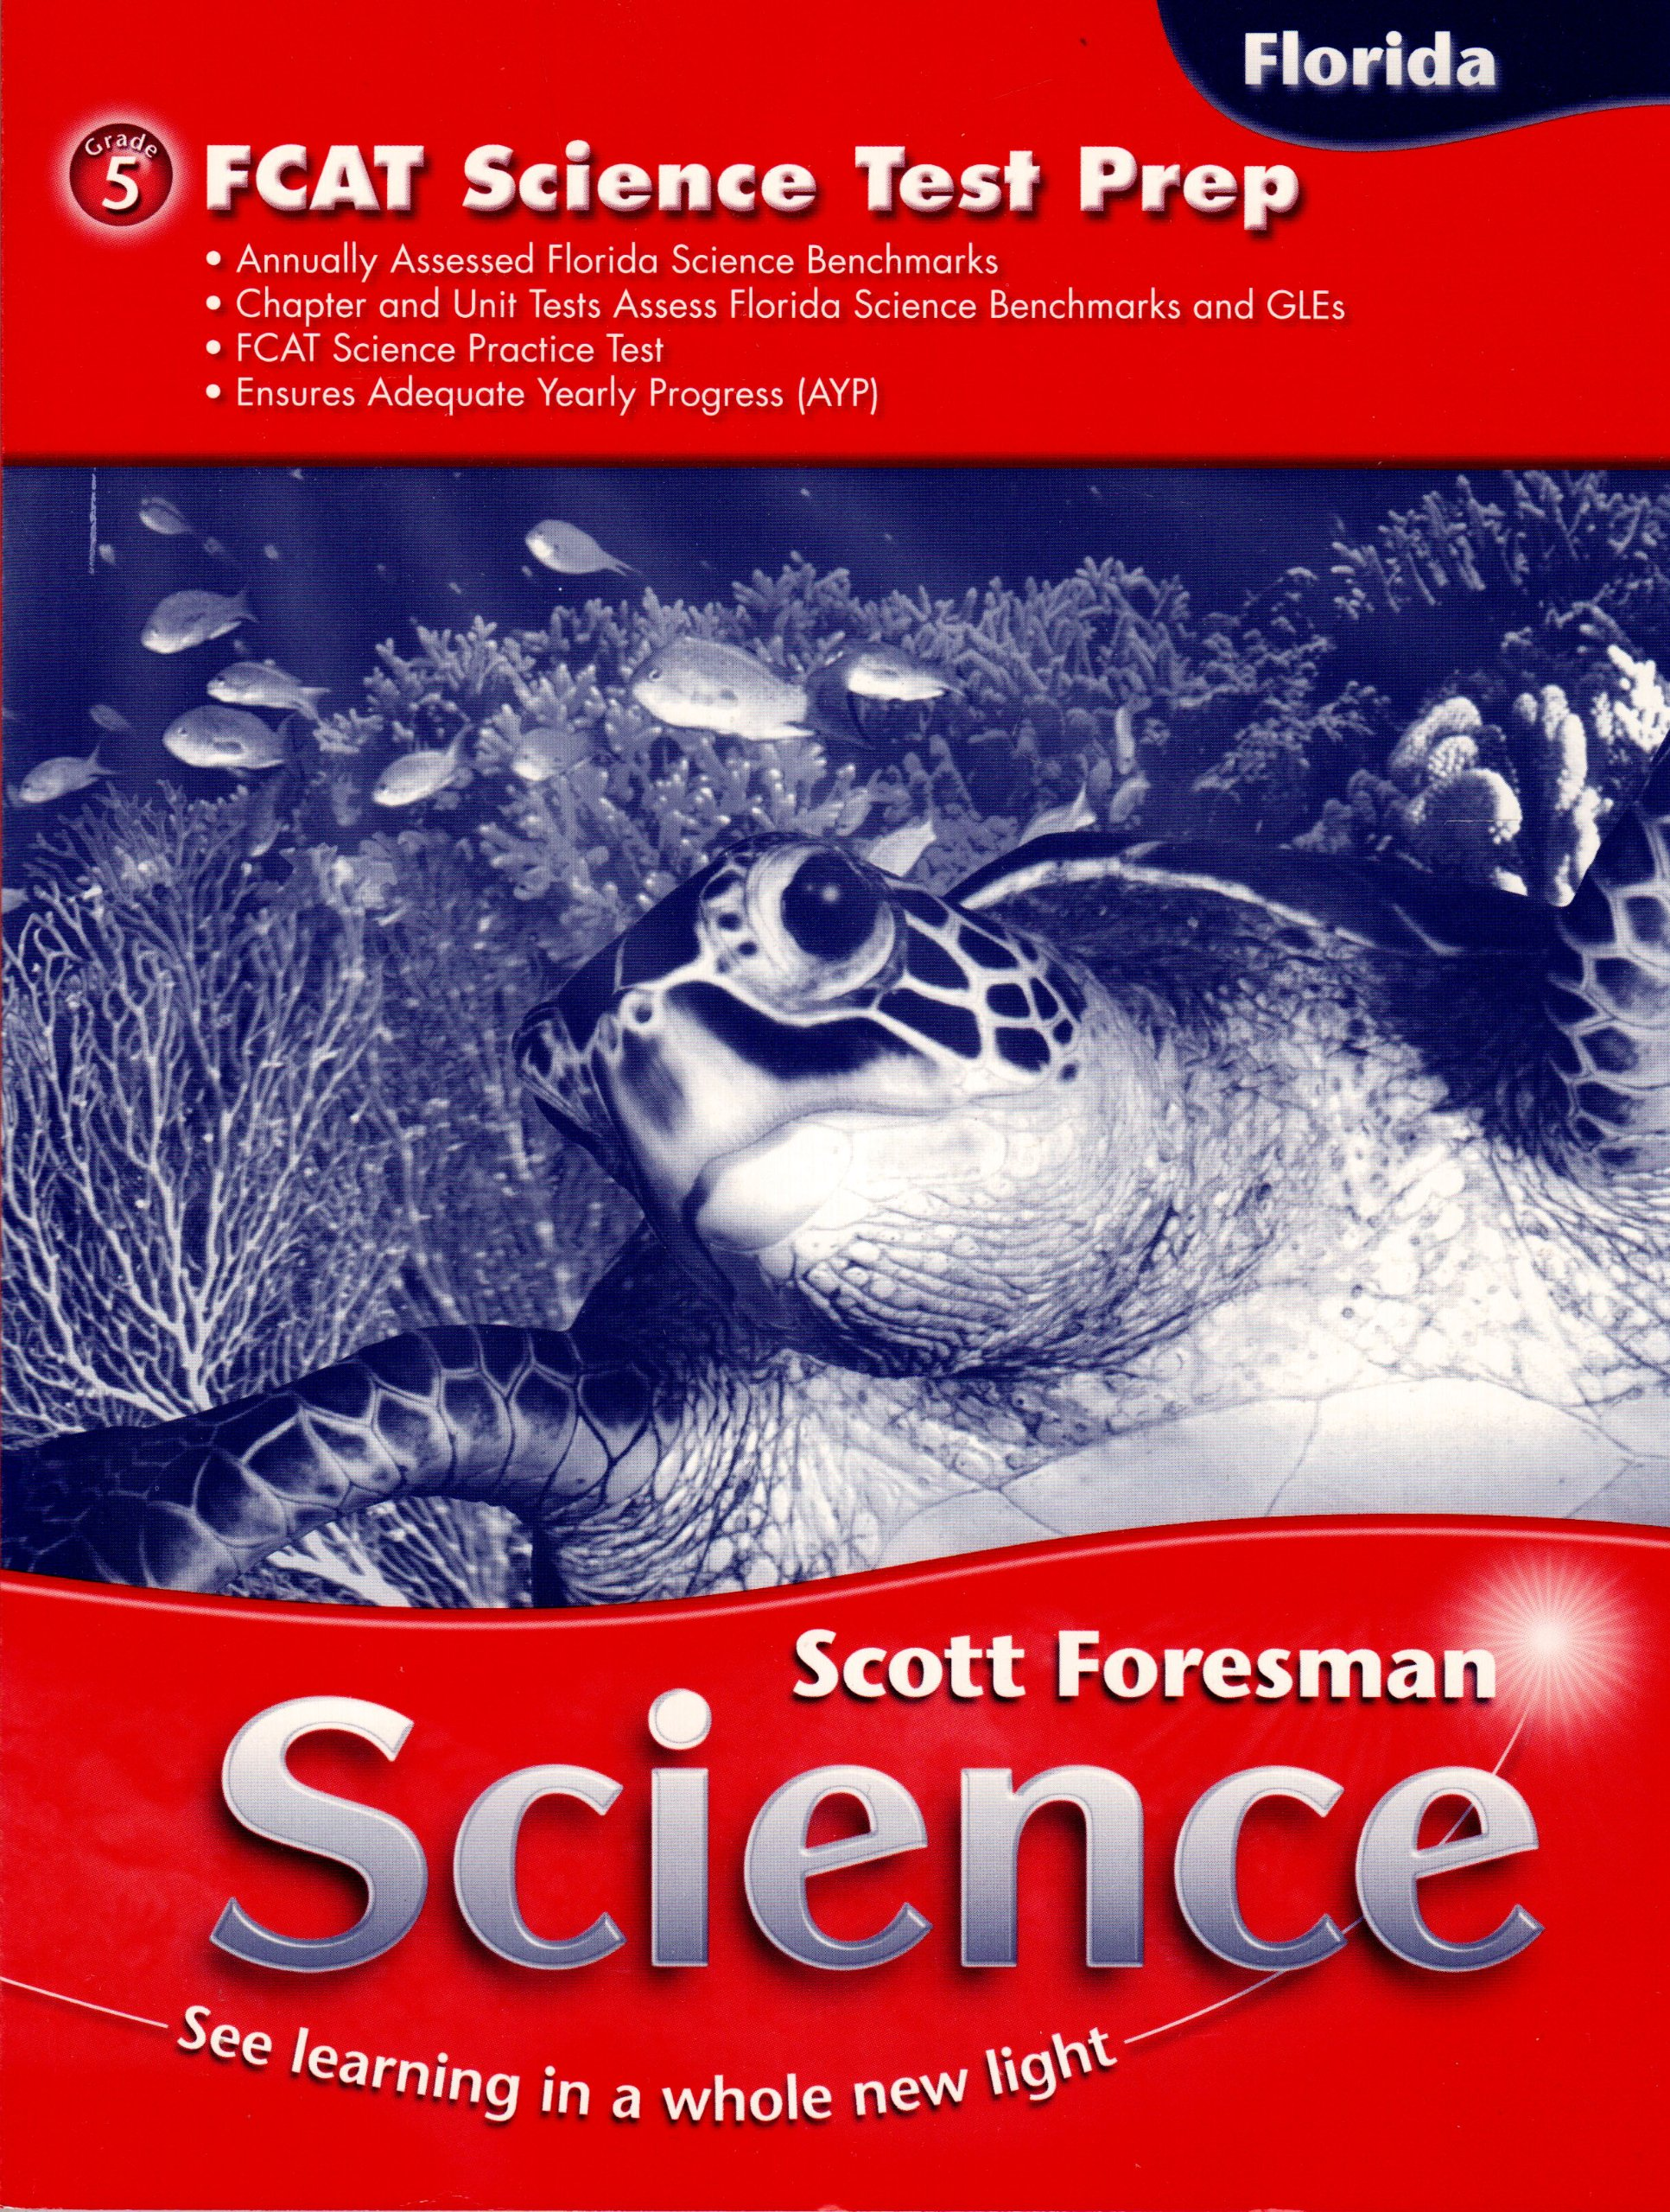 Fcat Science Test Prep 5th Grade Scott Foresman 9780328177462